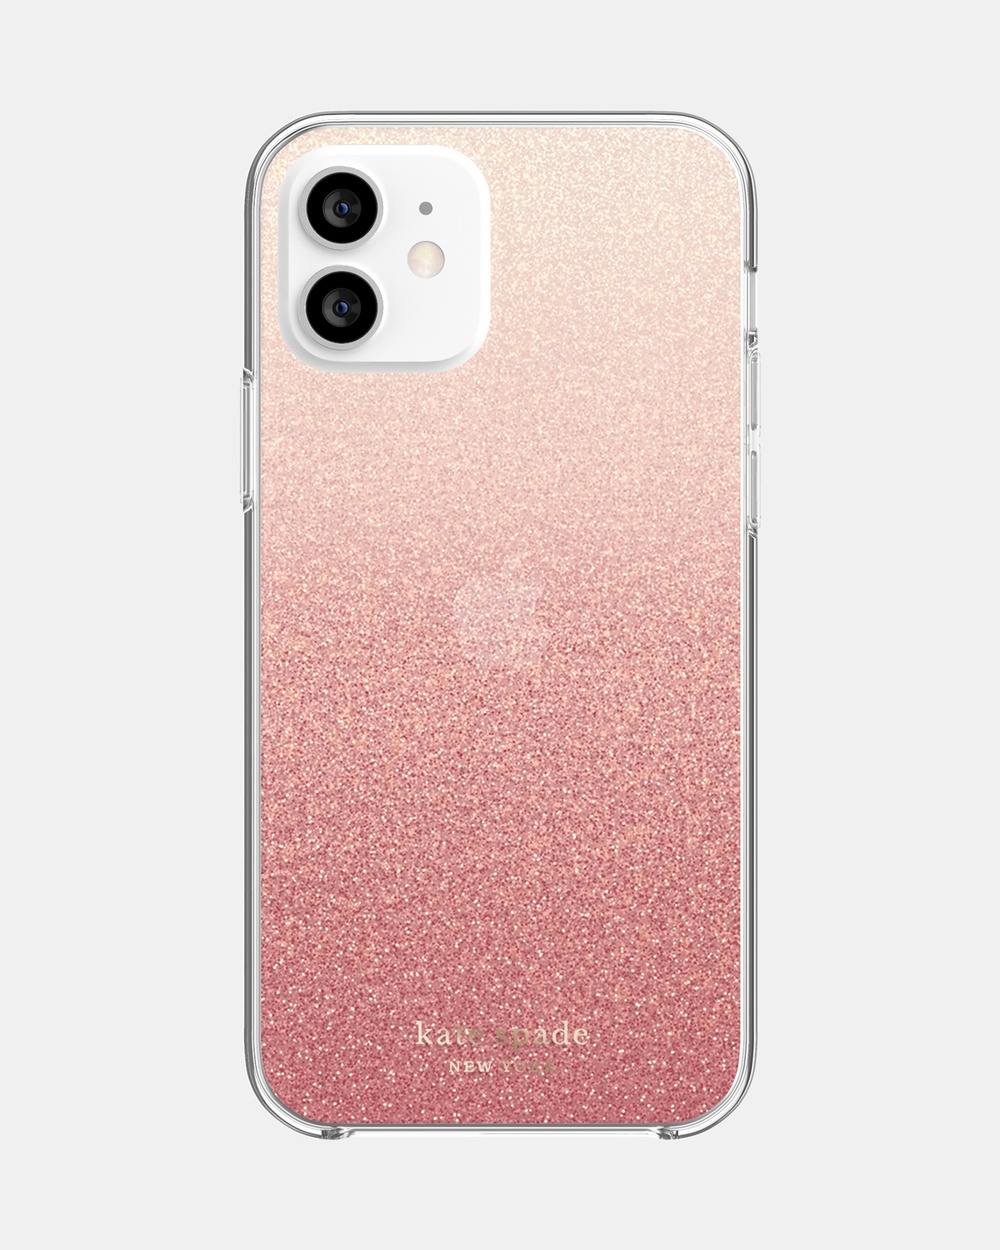 Kate Spade iPhone 12 & Pro Protective Case Tech Pink